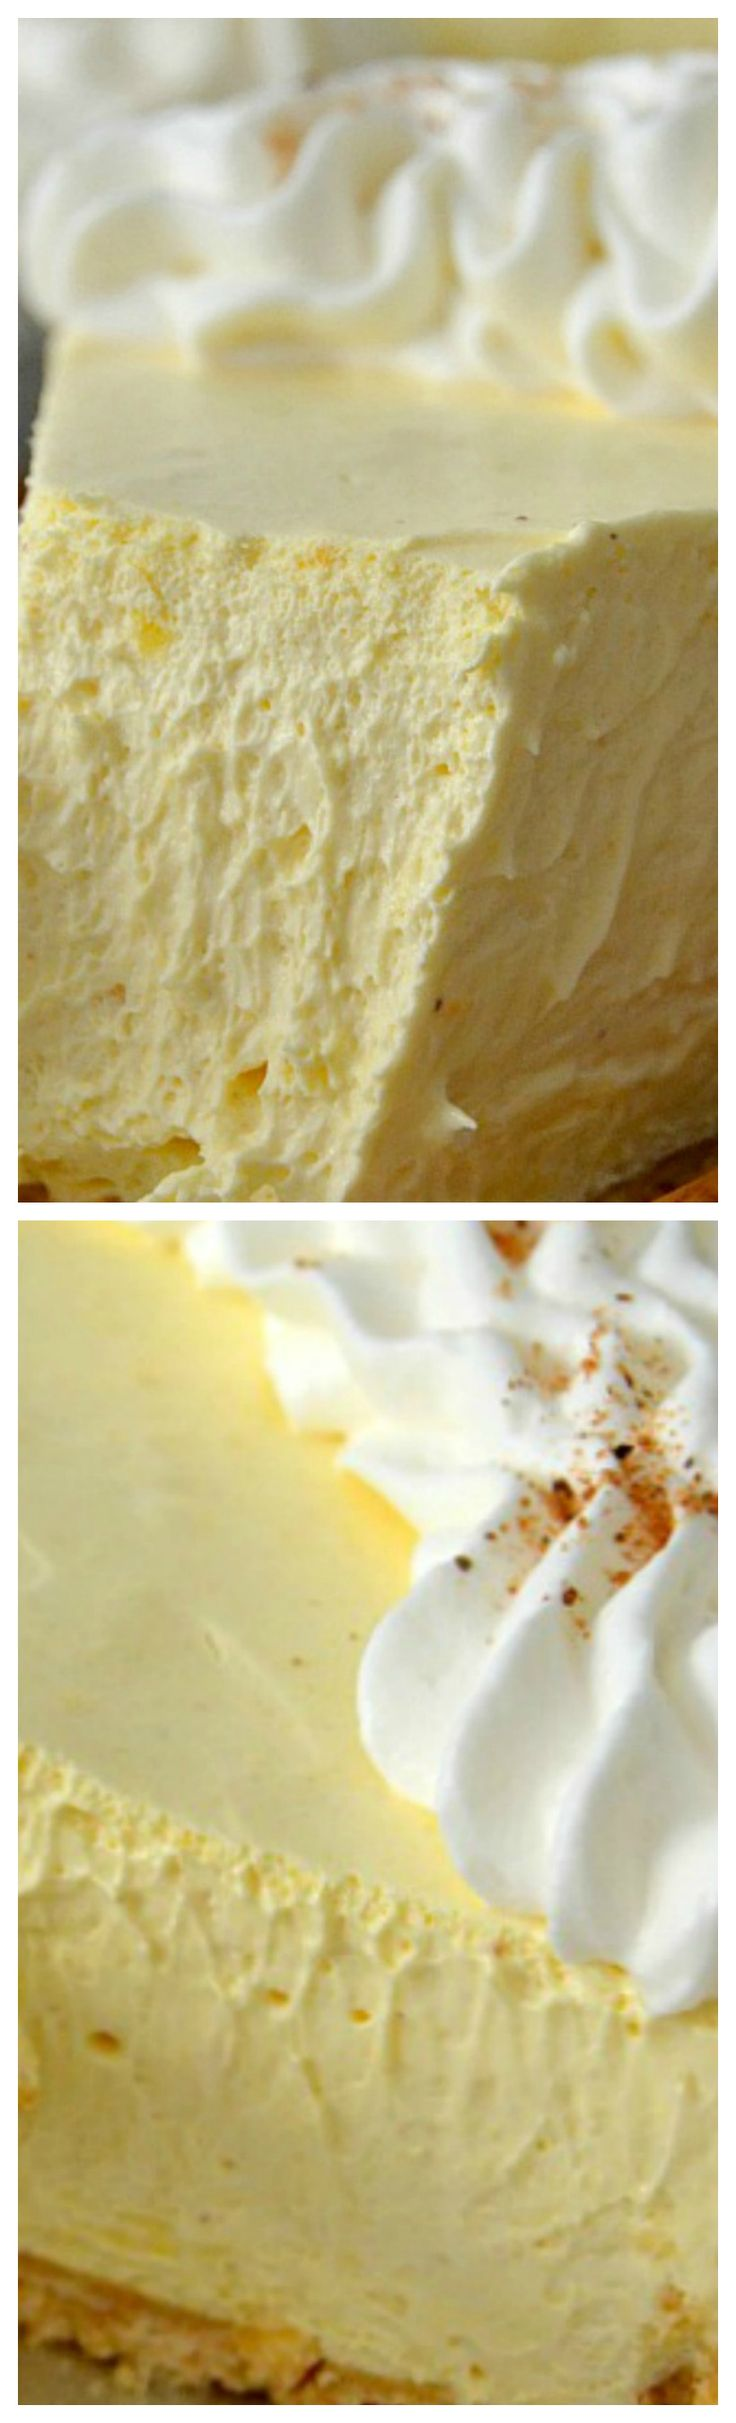 No-bake Eggnog Cream Pie ~ Easy to whip up and it tastes JUST like eggnog: thick, creamy and smooth with spices and wonderful vanilla flavor.